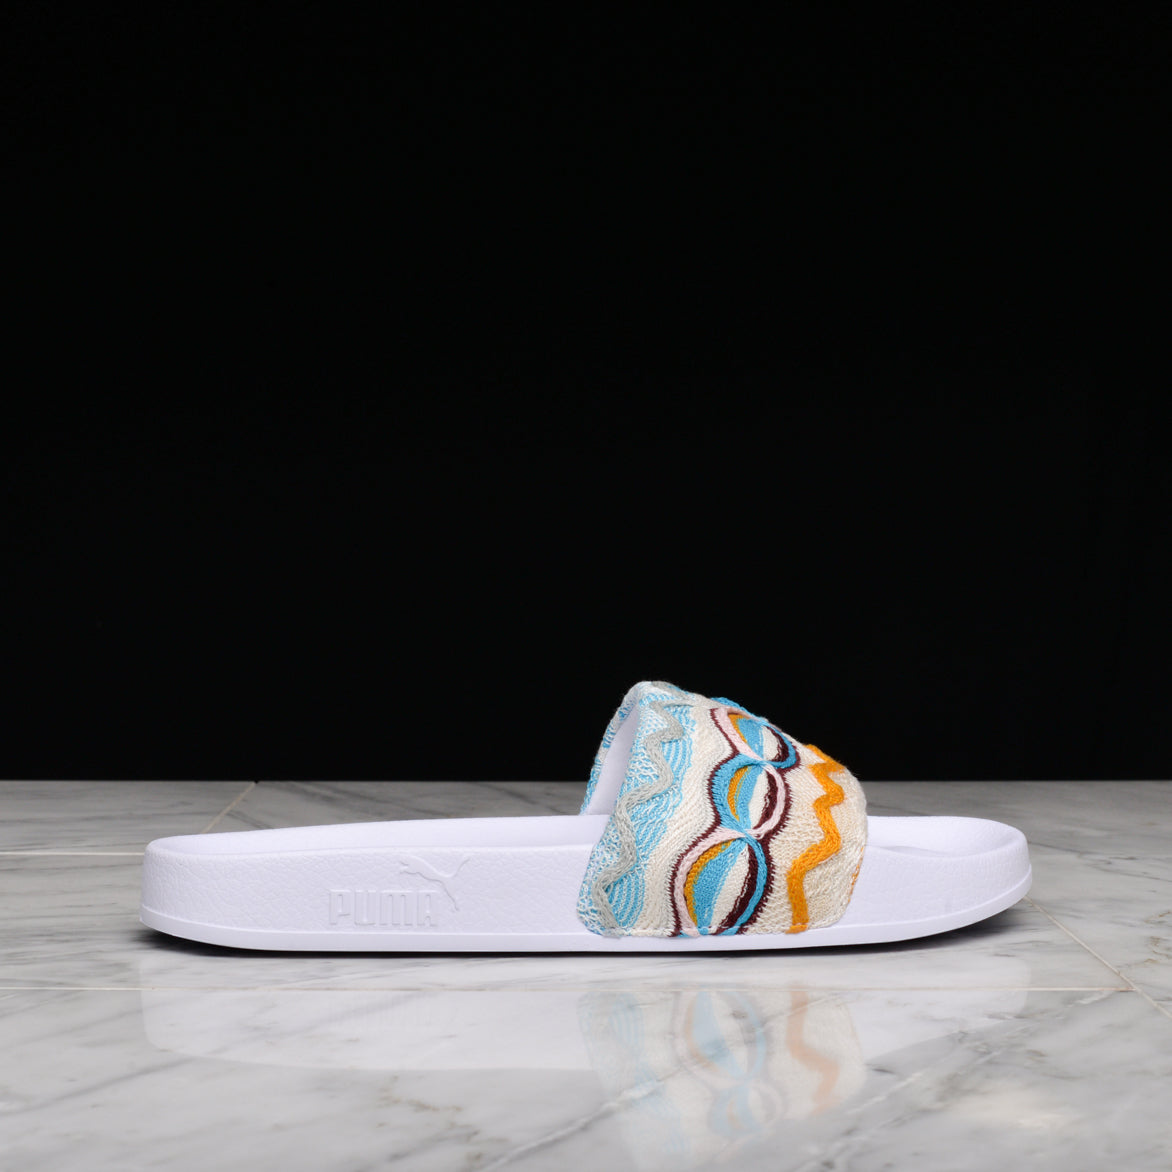 PUMA X COOGI LEADCAT SLIDE - WHITE / MULTI